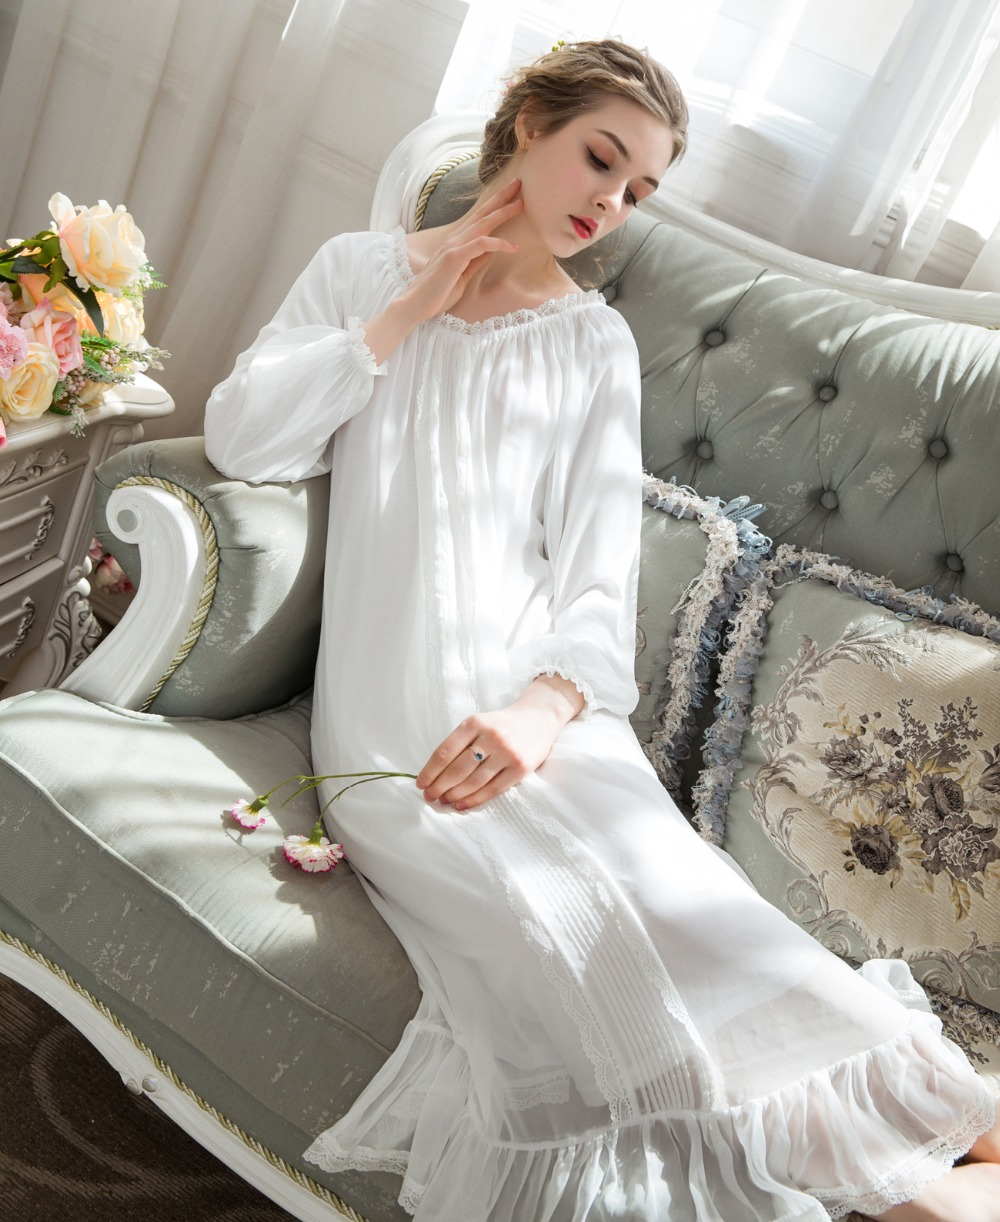 Women Sleepwear Plus Size Modal Chiffon Sleeping Dress Home NightwearLadies   Nightgowns     Sleepshirts   Lady Long Nightdress 0287#